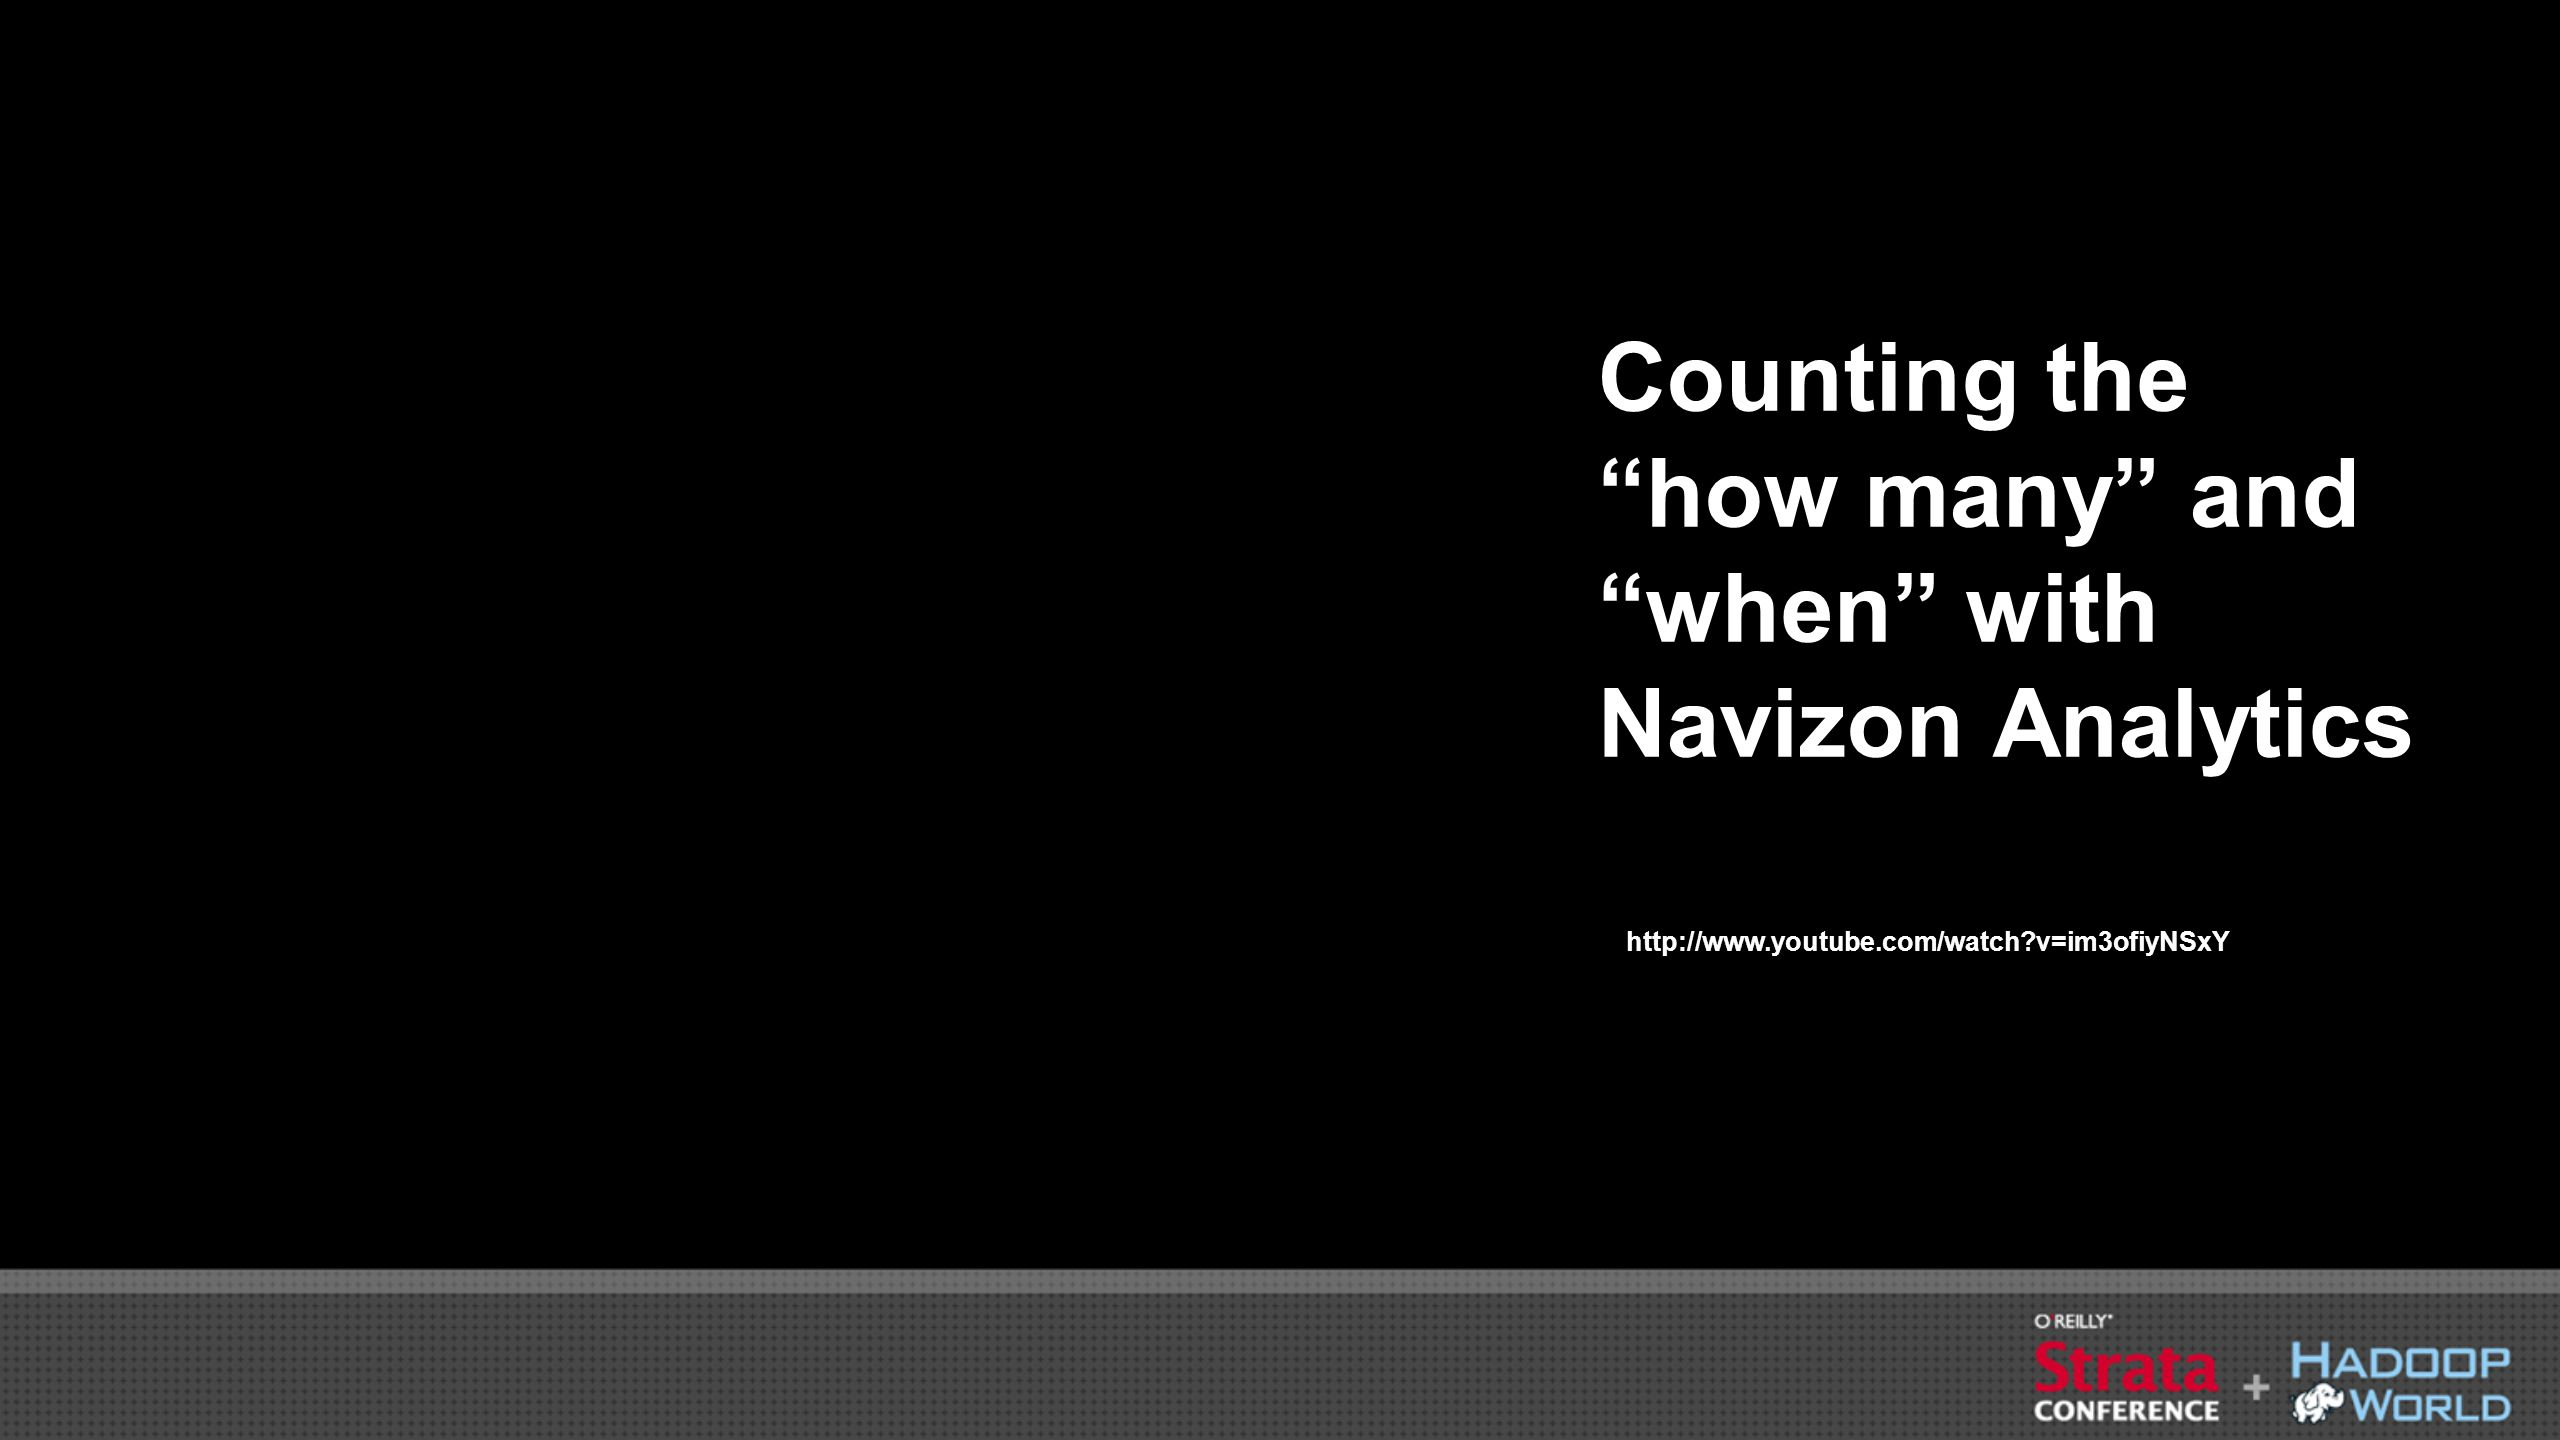 Counting the how many and when with Navizon Analytics http://www.youtube.com/watch?v=im3ofiyNSxY